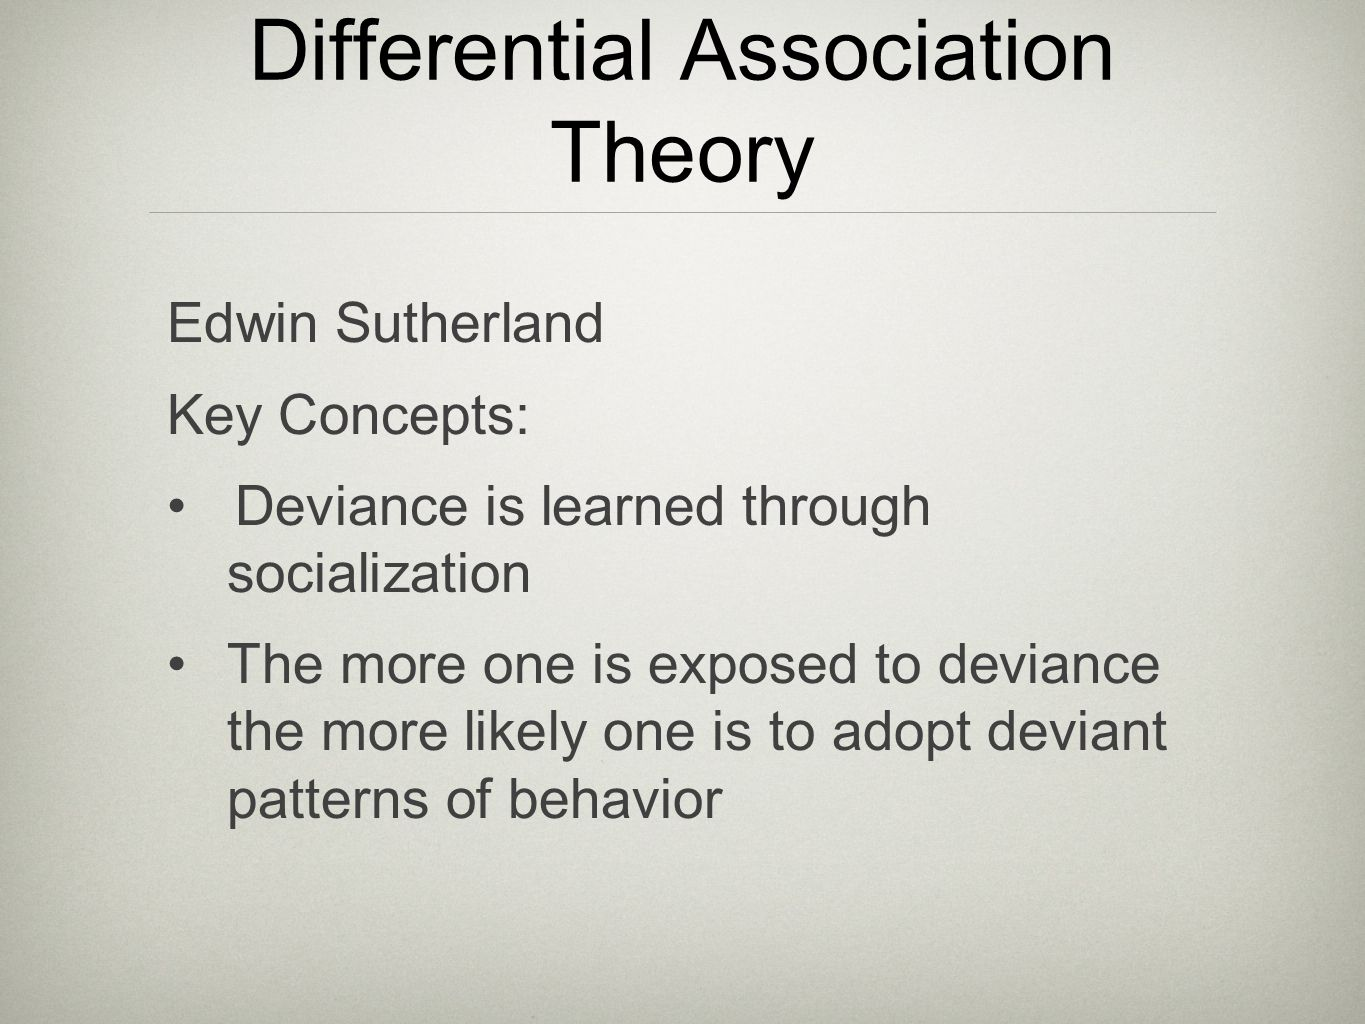 differential association and social bonding theory Differential association and social bonding theory essays: over 180,000 differential association and social bonding theory essays, differential association and social bonding theory term papers, differential association and social bonding theory research paper, book reports 184 990 essays, term and research papers available for unlimited access.